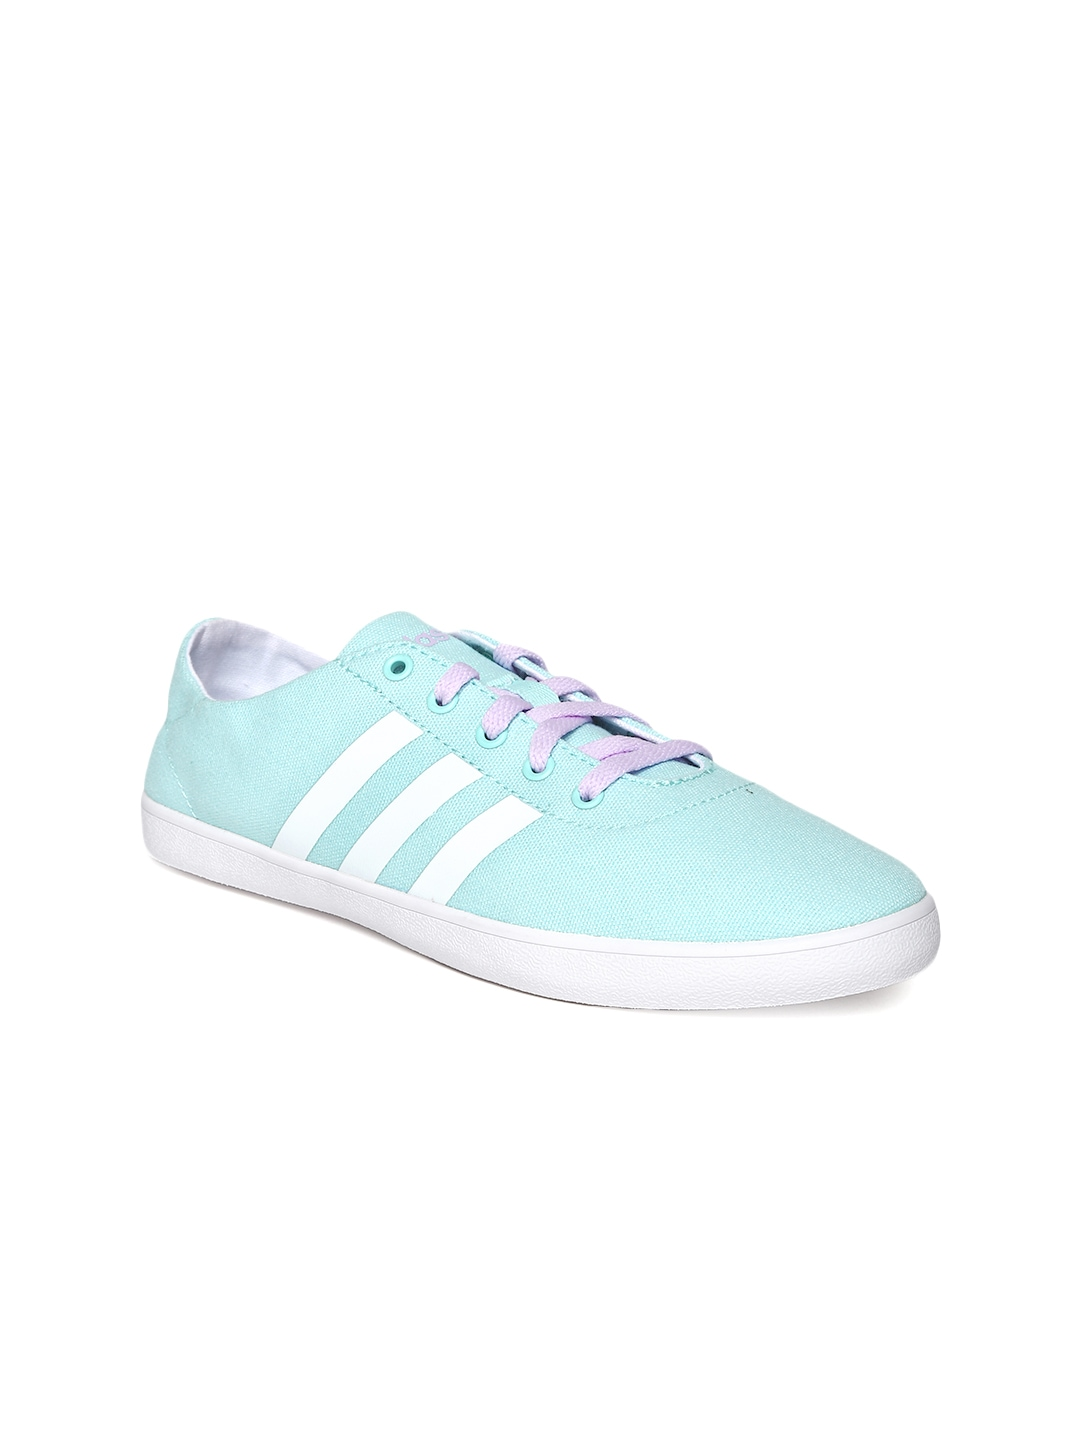 adidas casual shoes for women